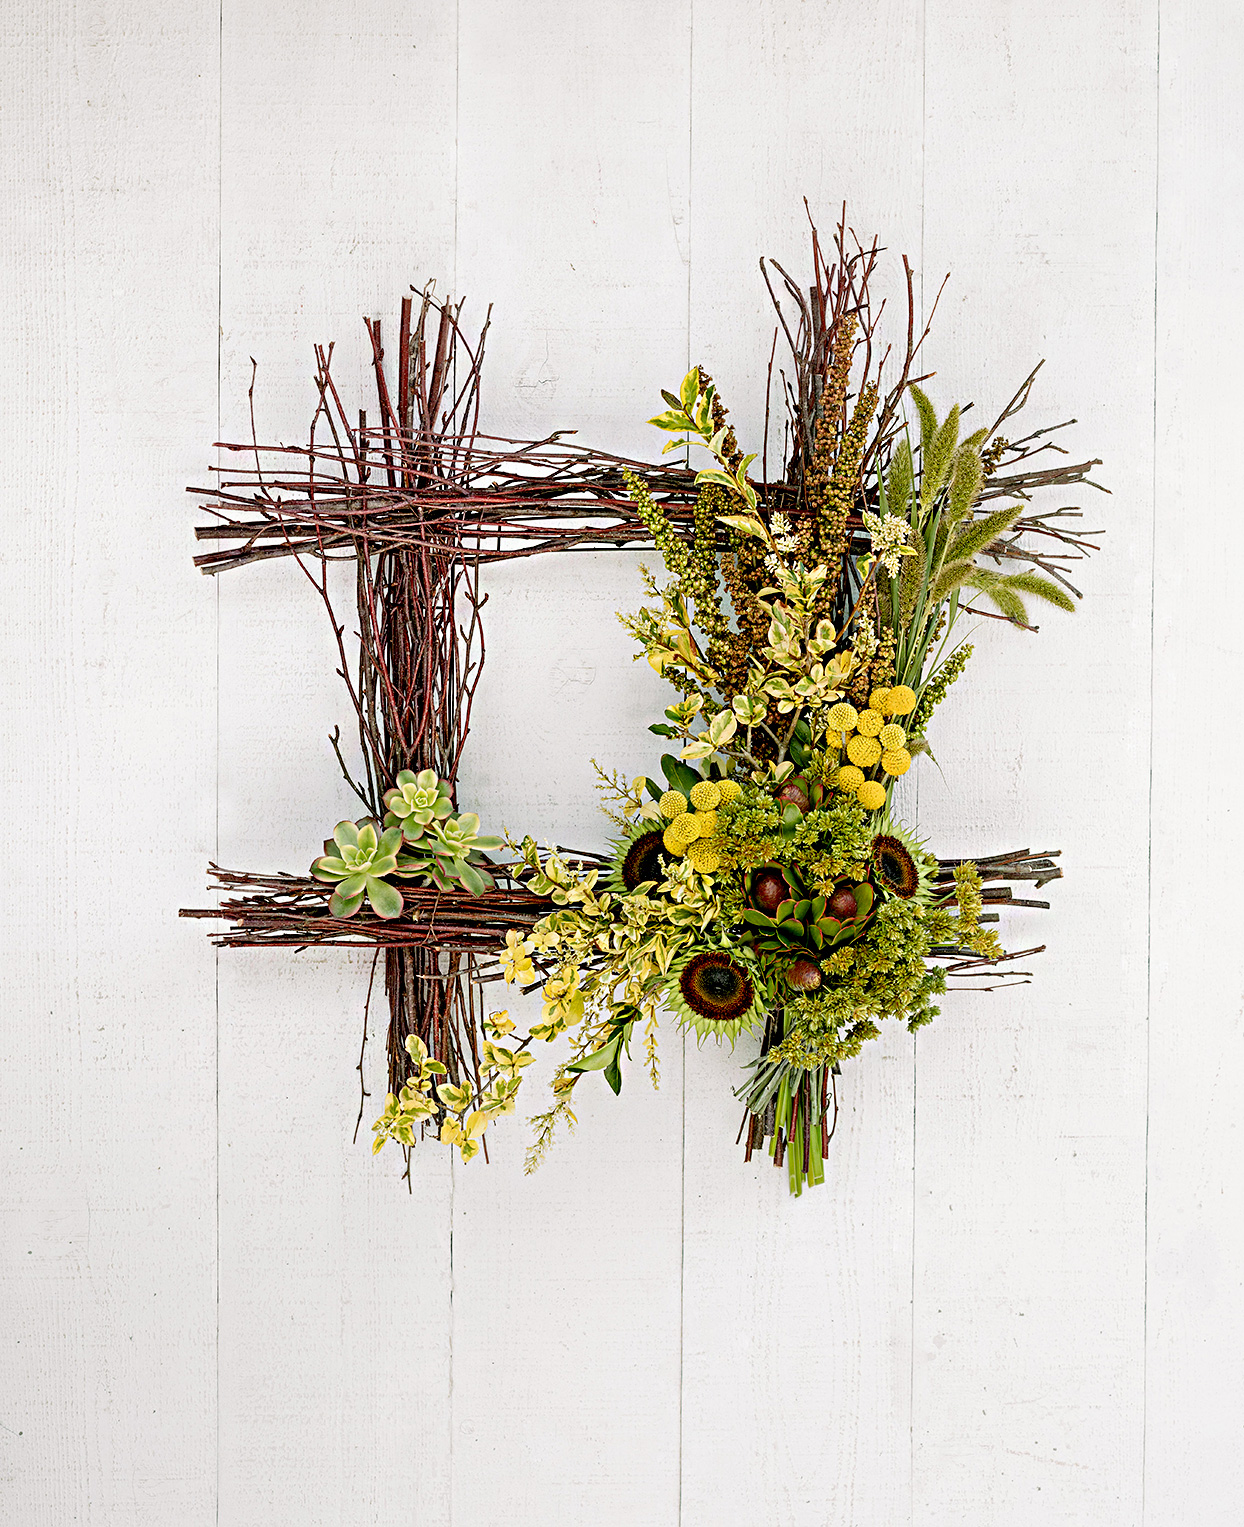 Square wreath made of branches and plants